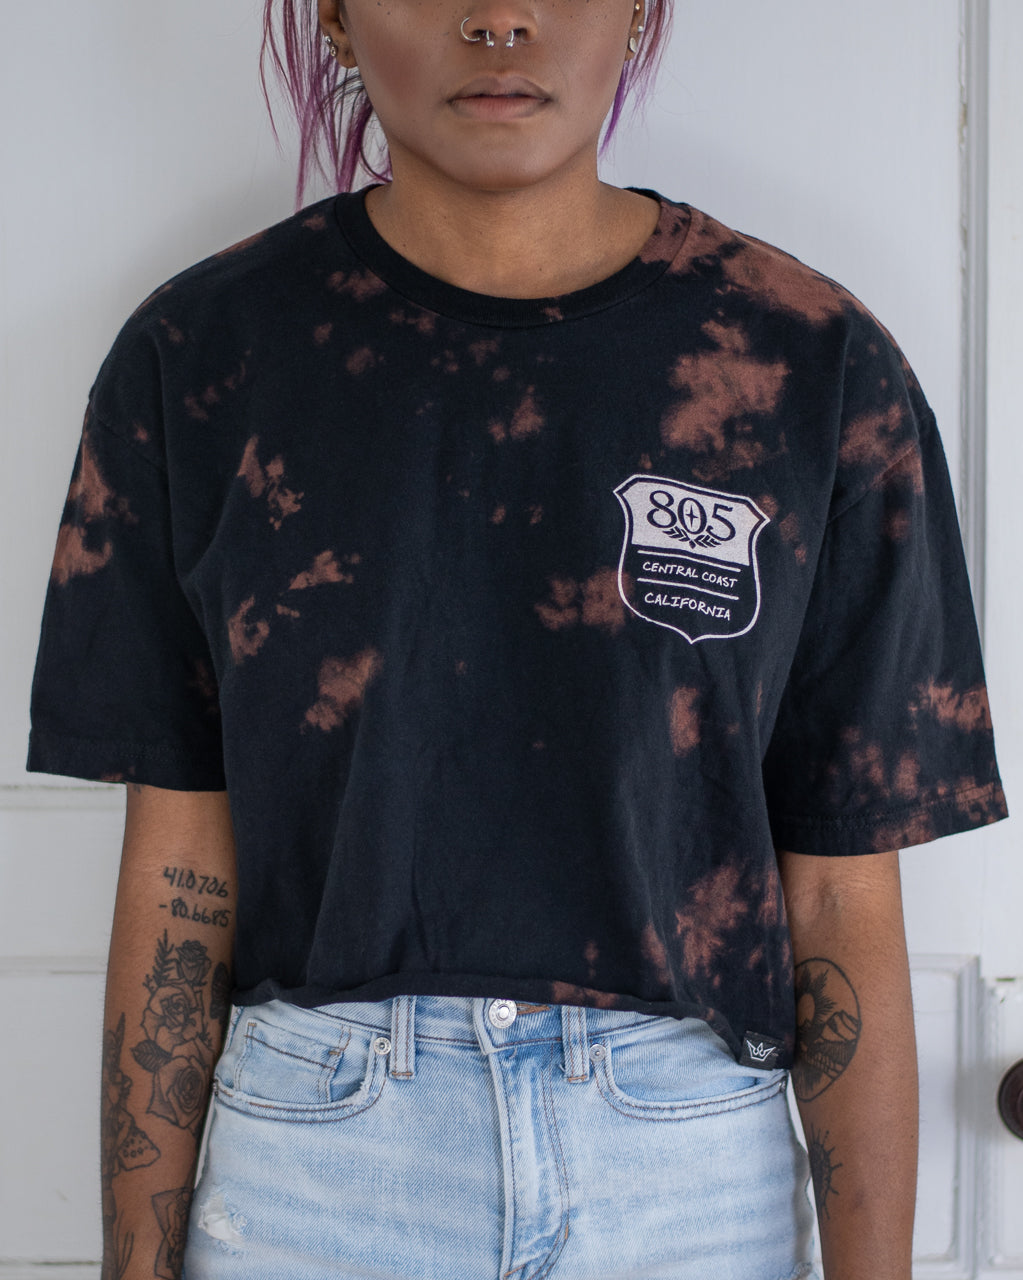 805 black bleach dye crop tee